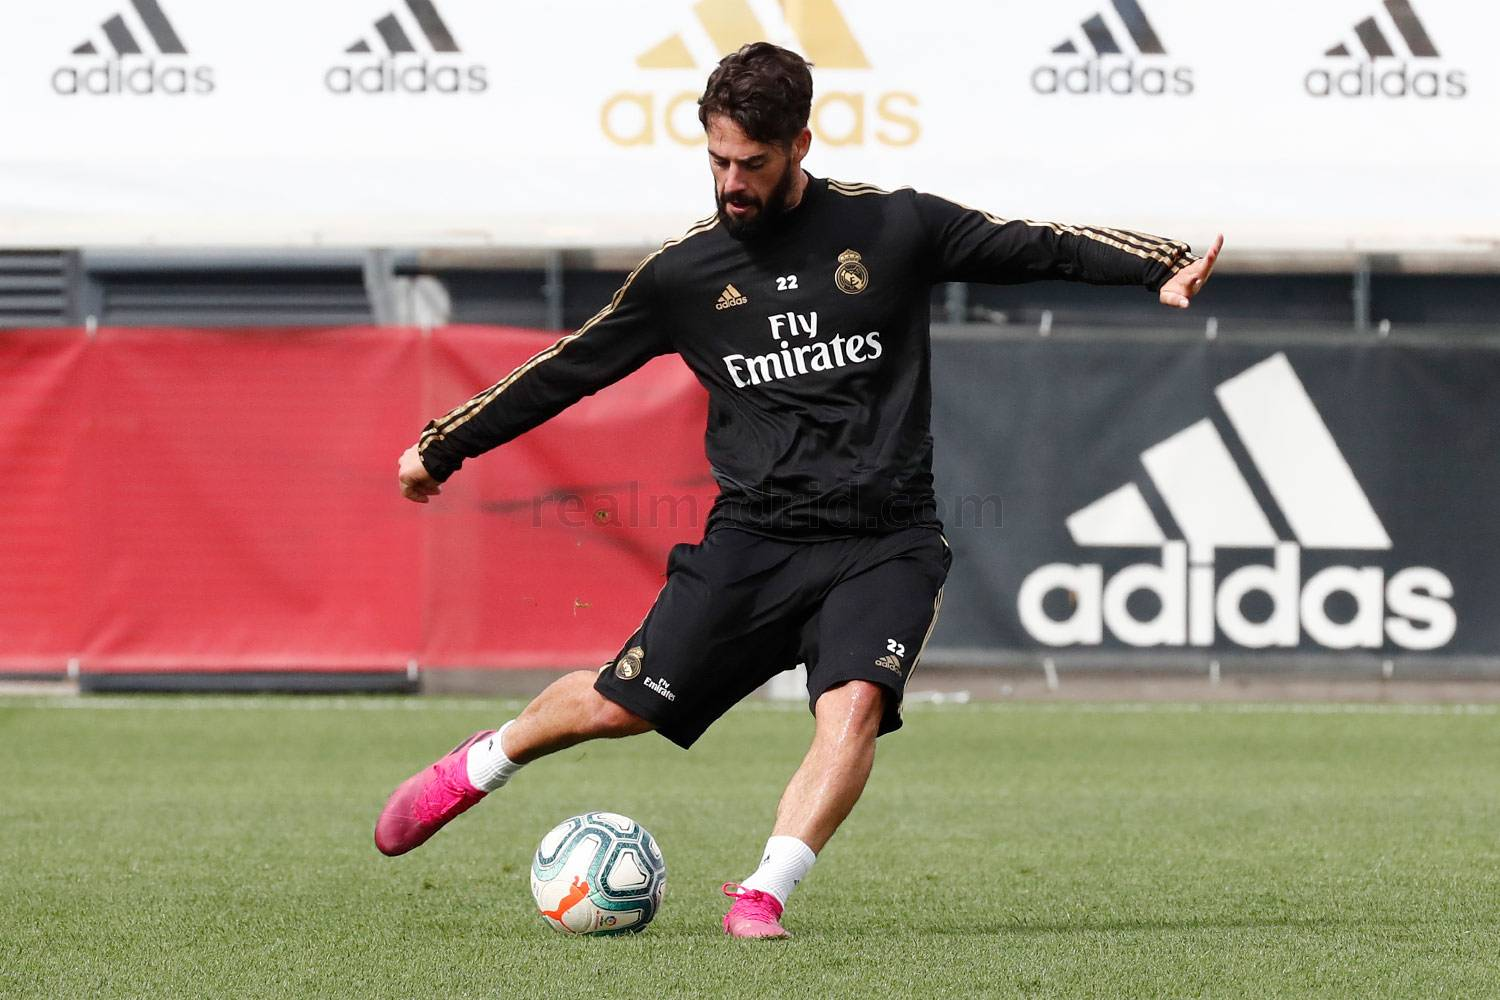 Real Madrid - Entrenamiento del Real Madrid  - 21-09-2019